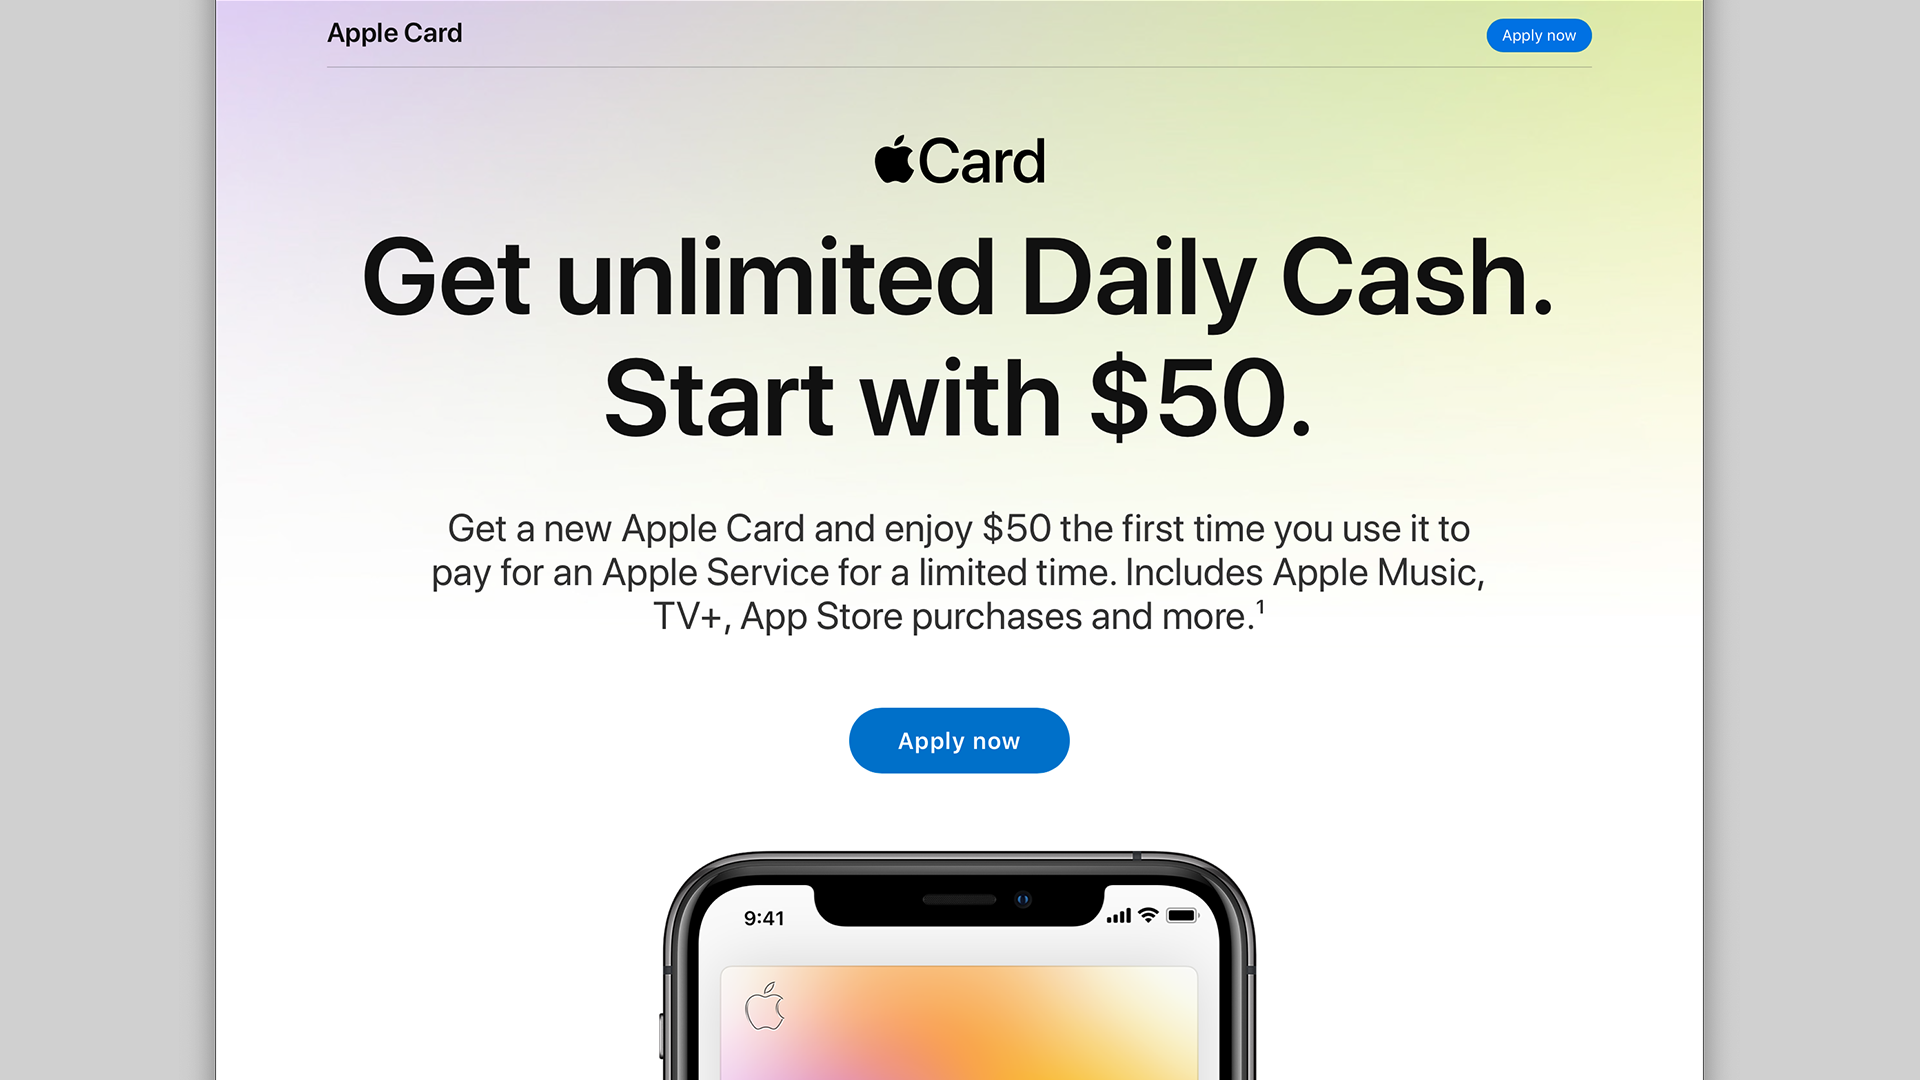 New Apple Card promo offers $10 bonus when you sign up for an